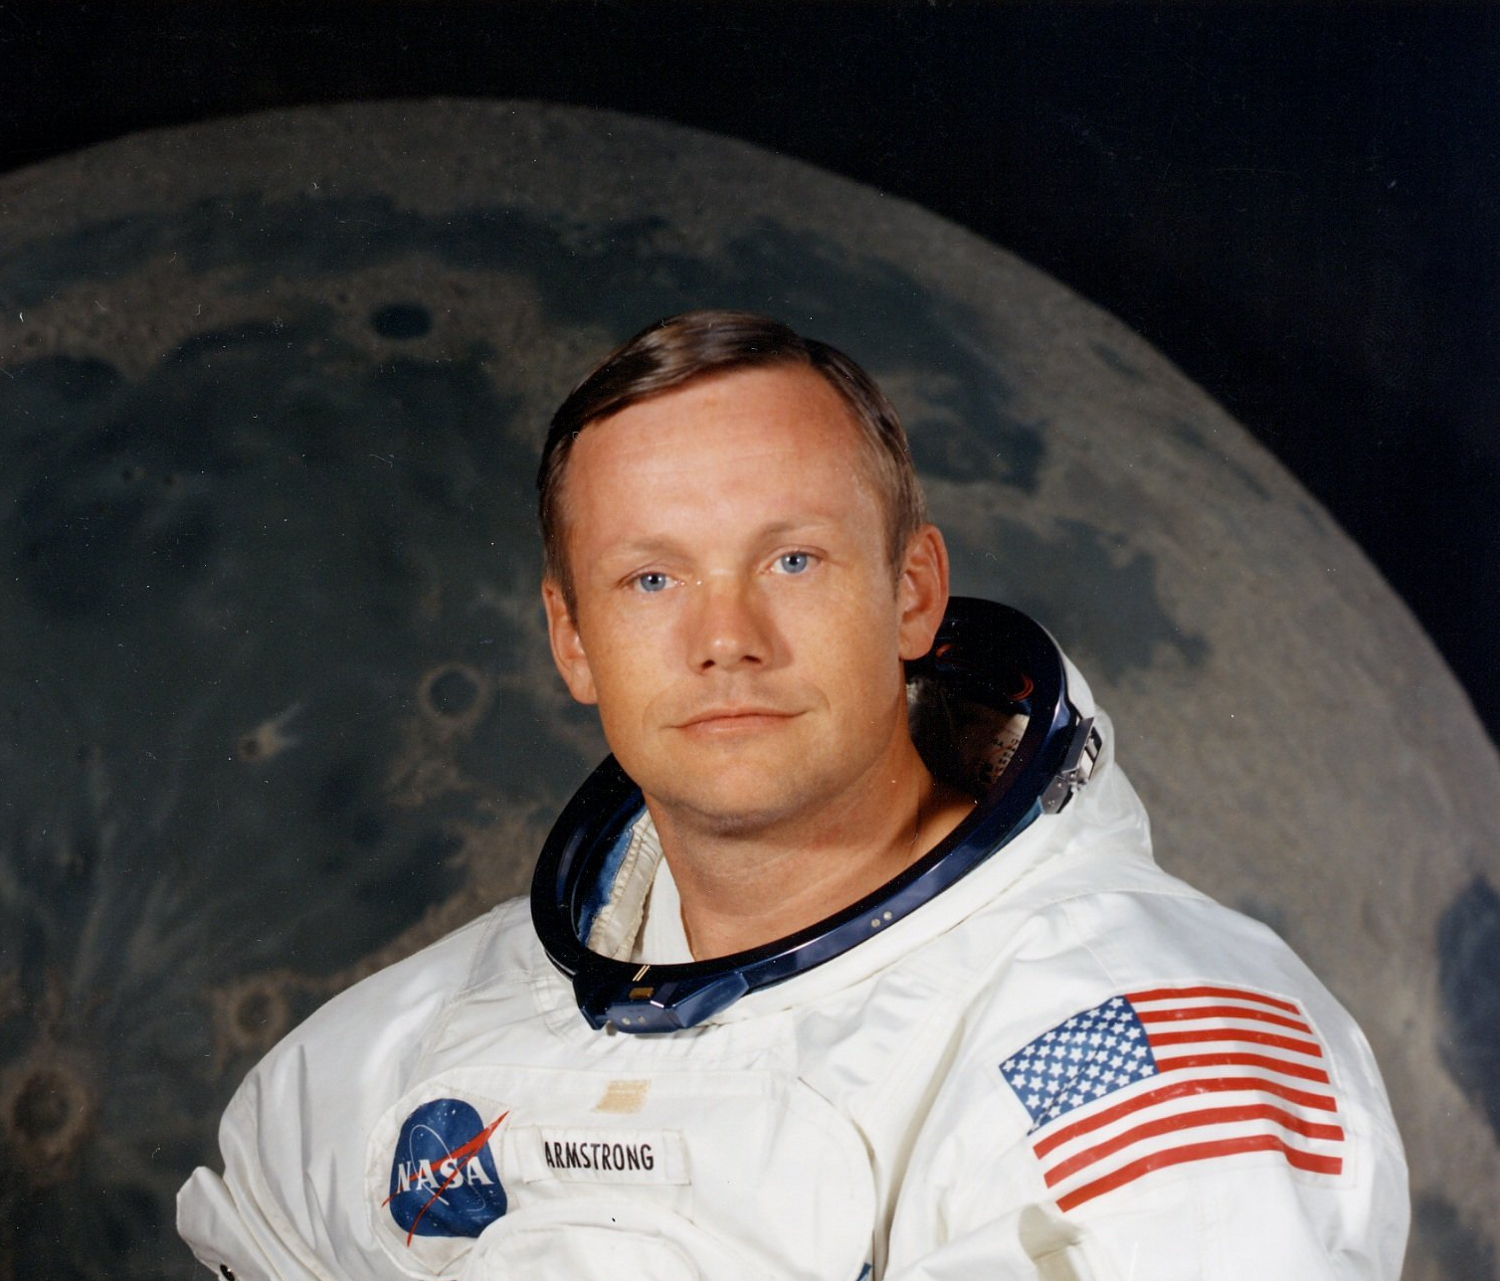 neil armstrong born cincinnati ohio - photo #3